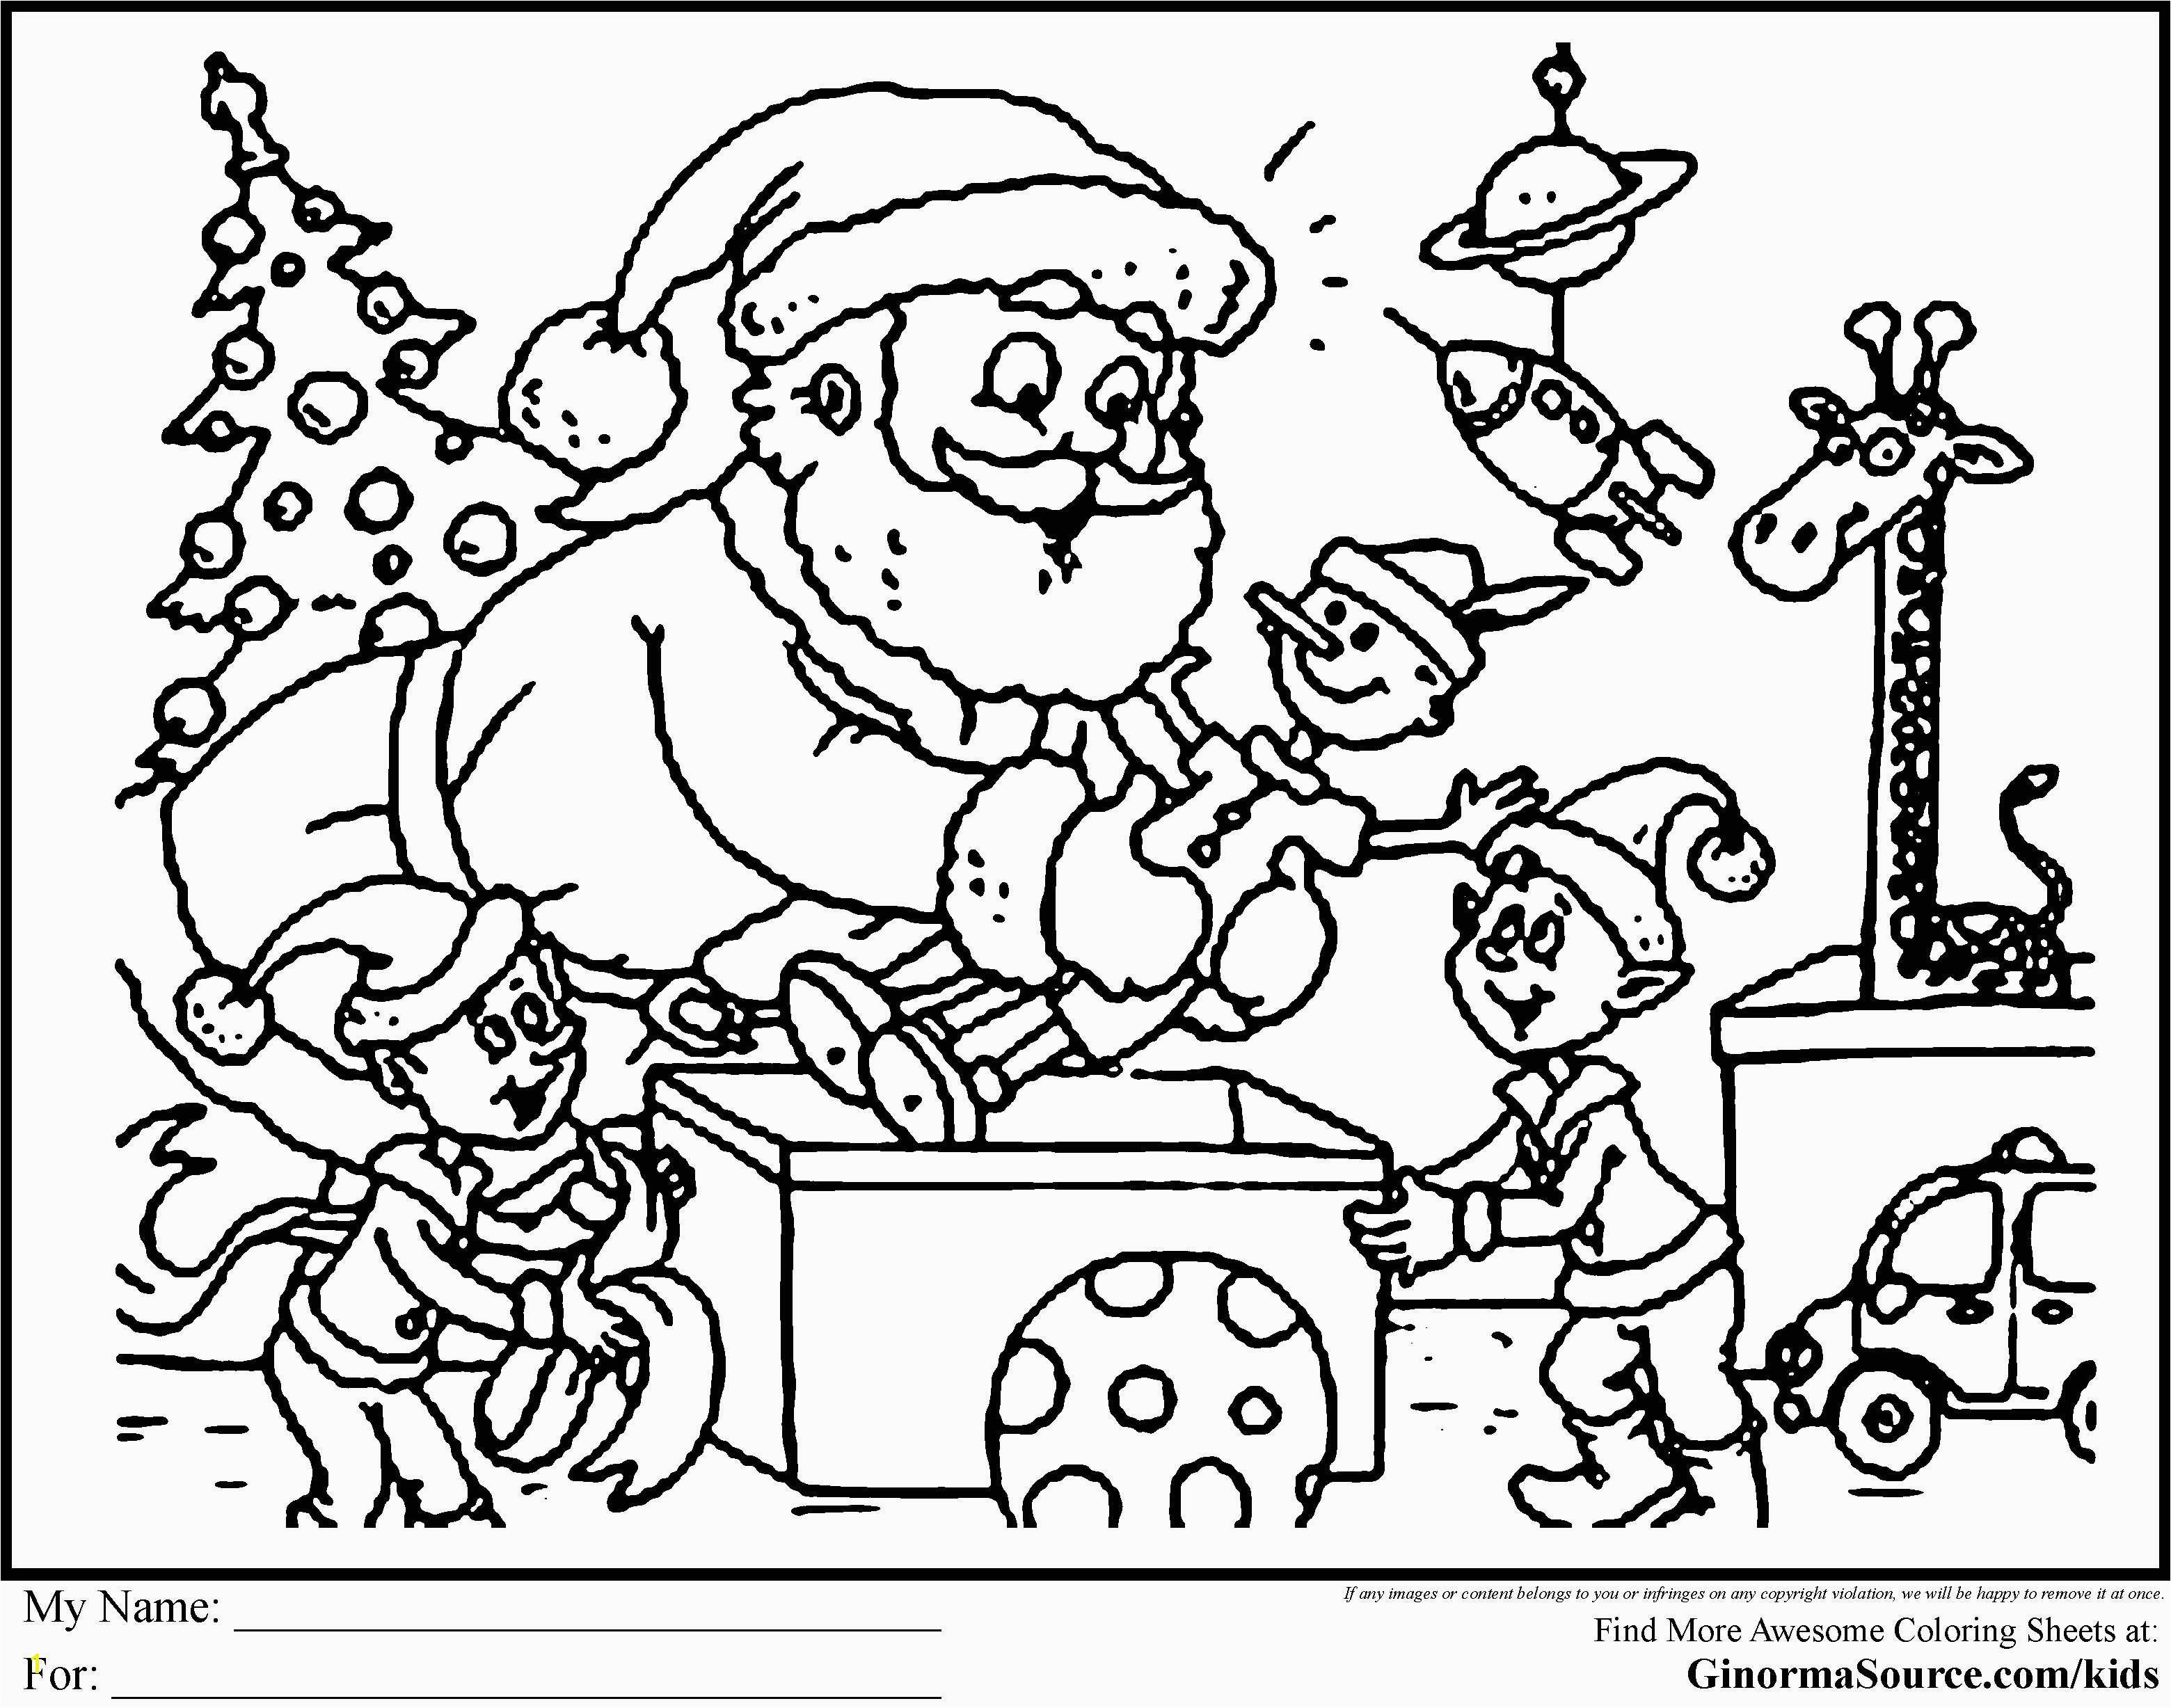 Free Coloring Pages For Kids To Print Coloring Pages For Print Inspirational Printable Cds 0d Coloring